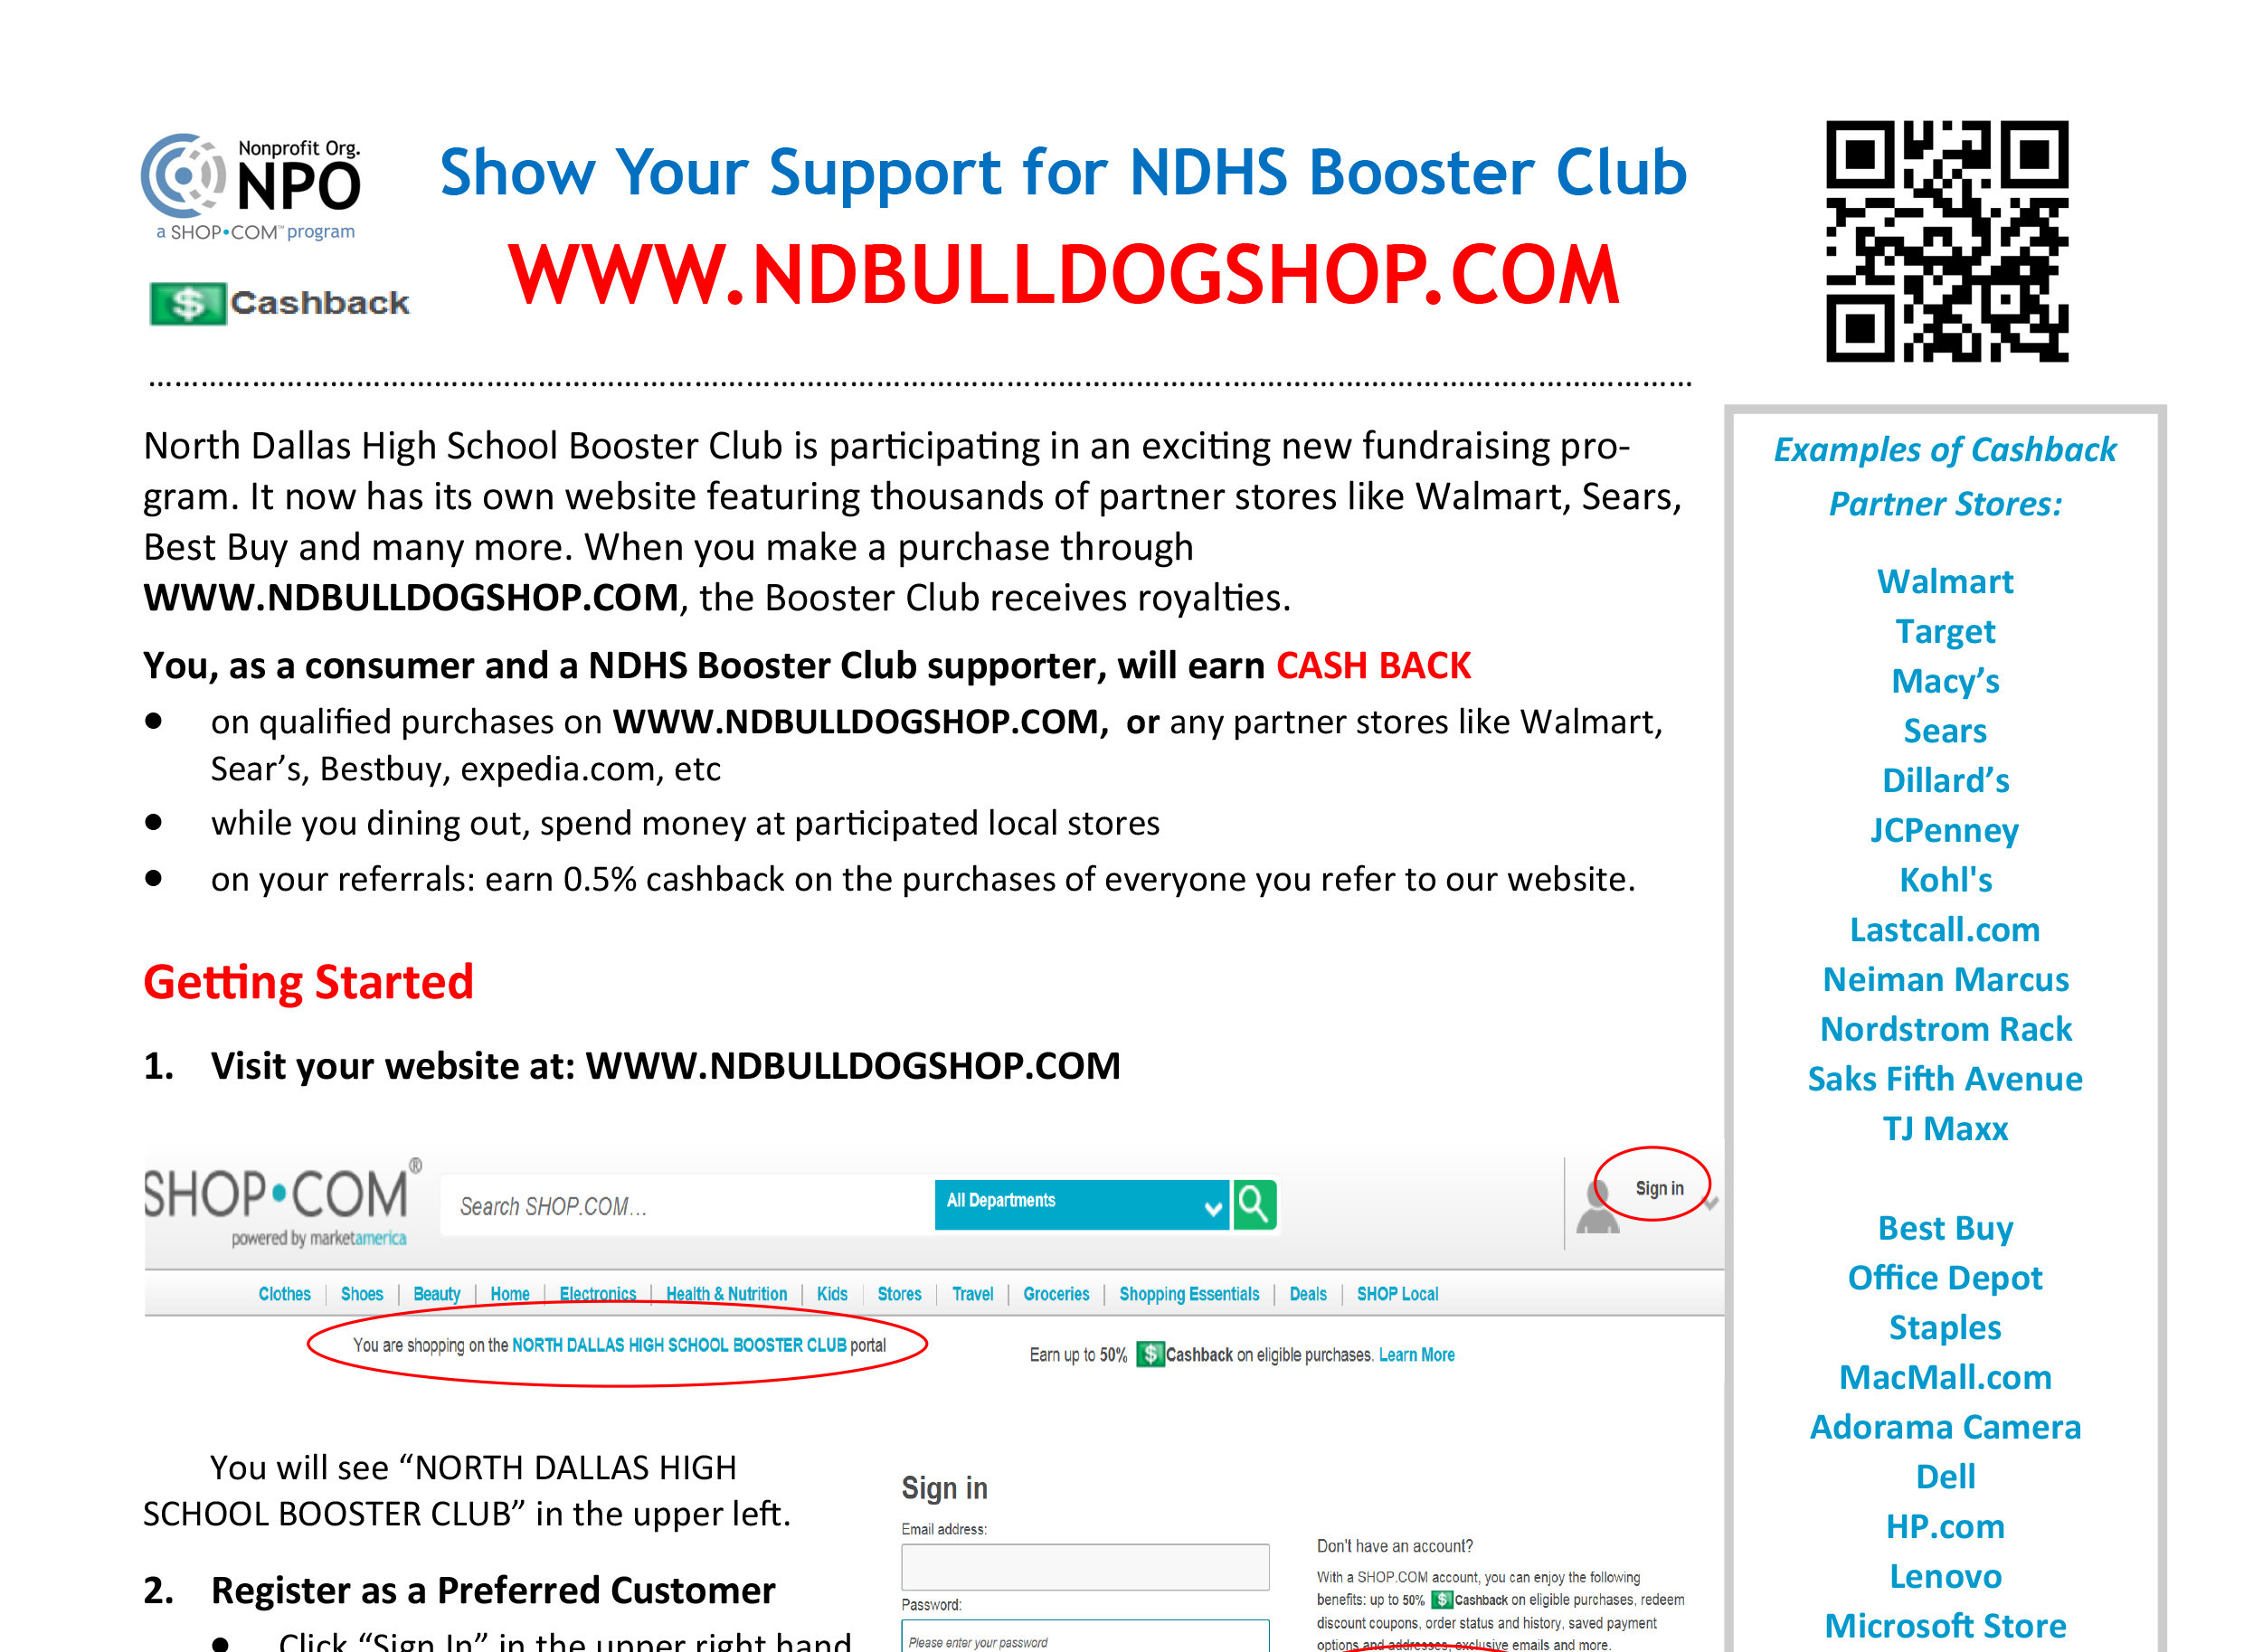 Booster Club's NDBulldogshop.com offers great last-minute gift ideas